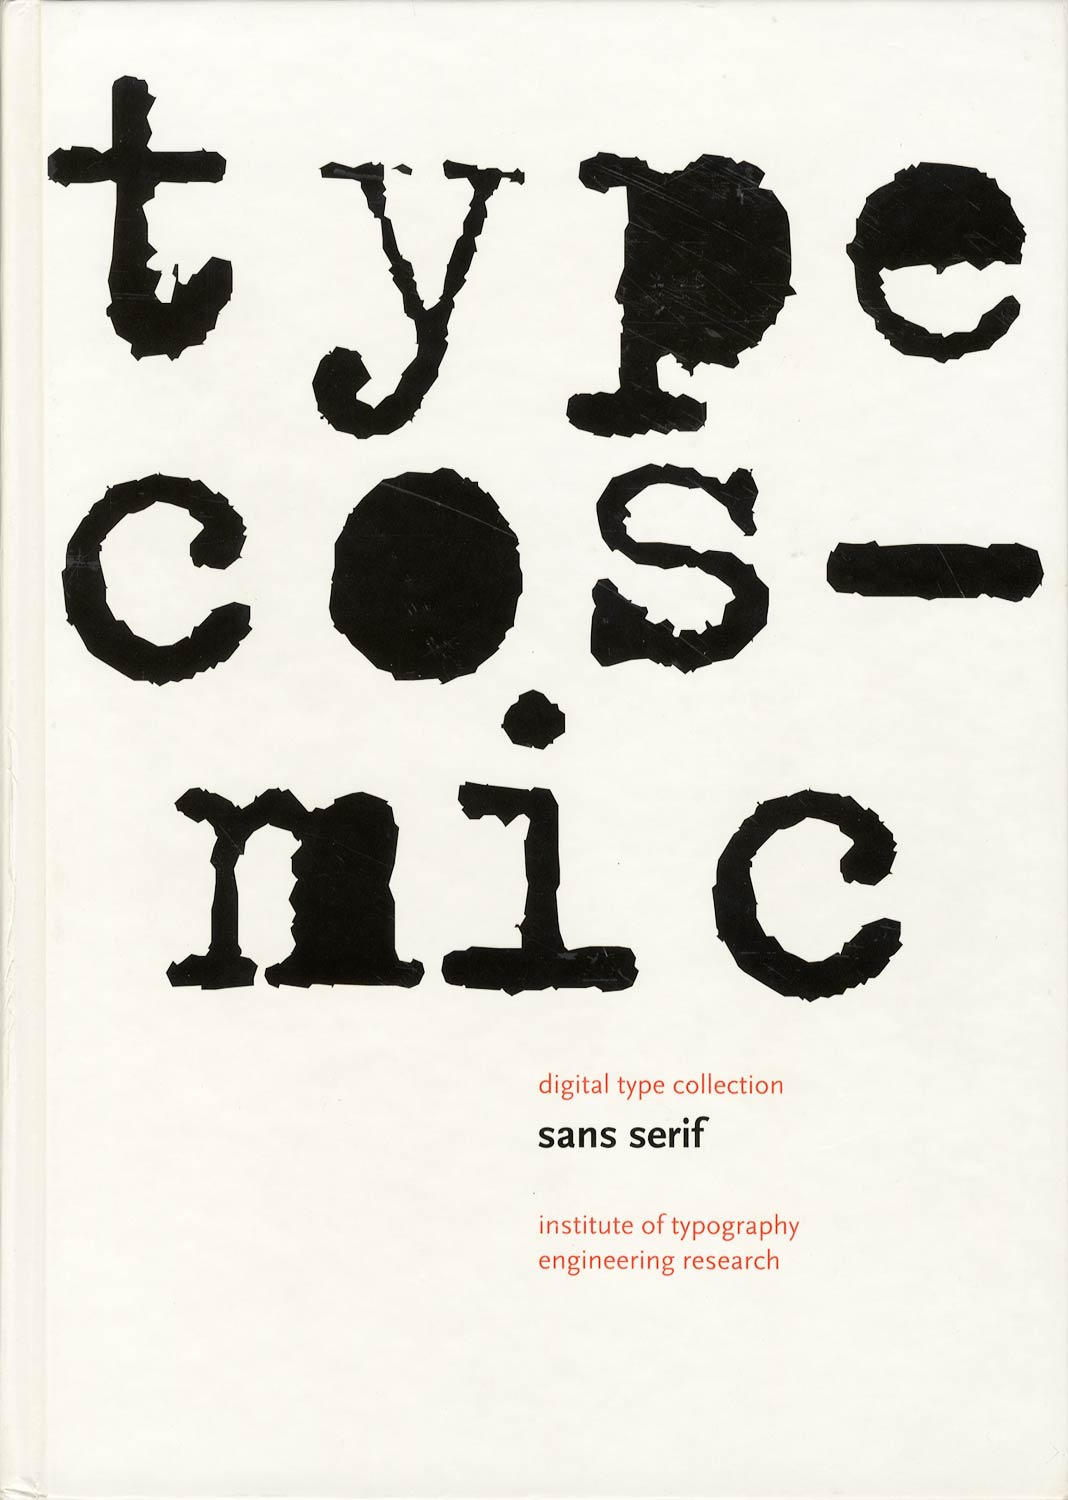 TypeCosmic Digital Type Collection Sans Serif